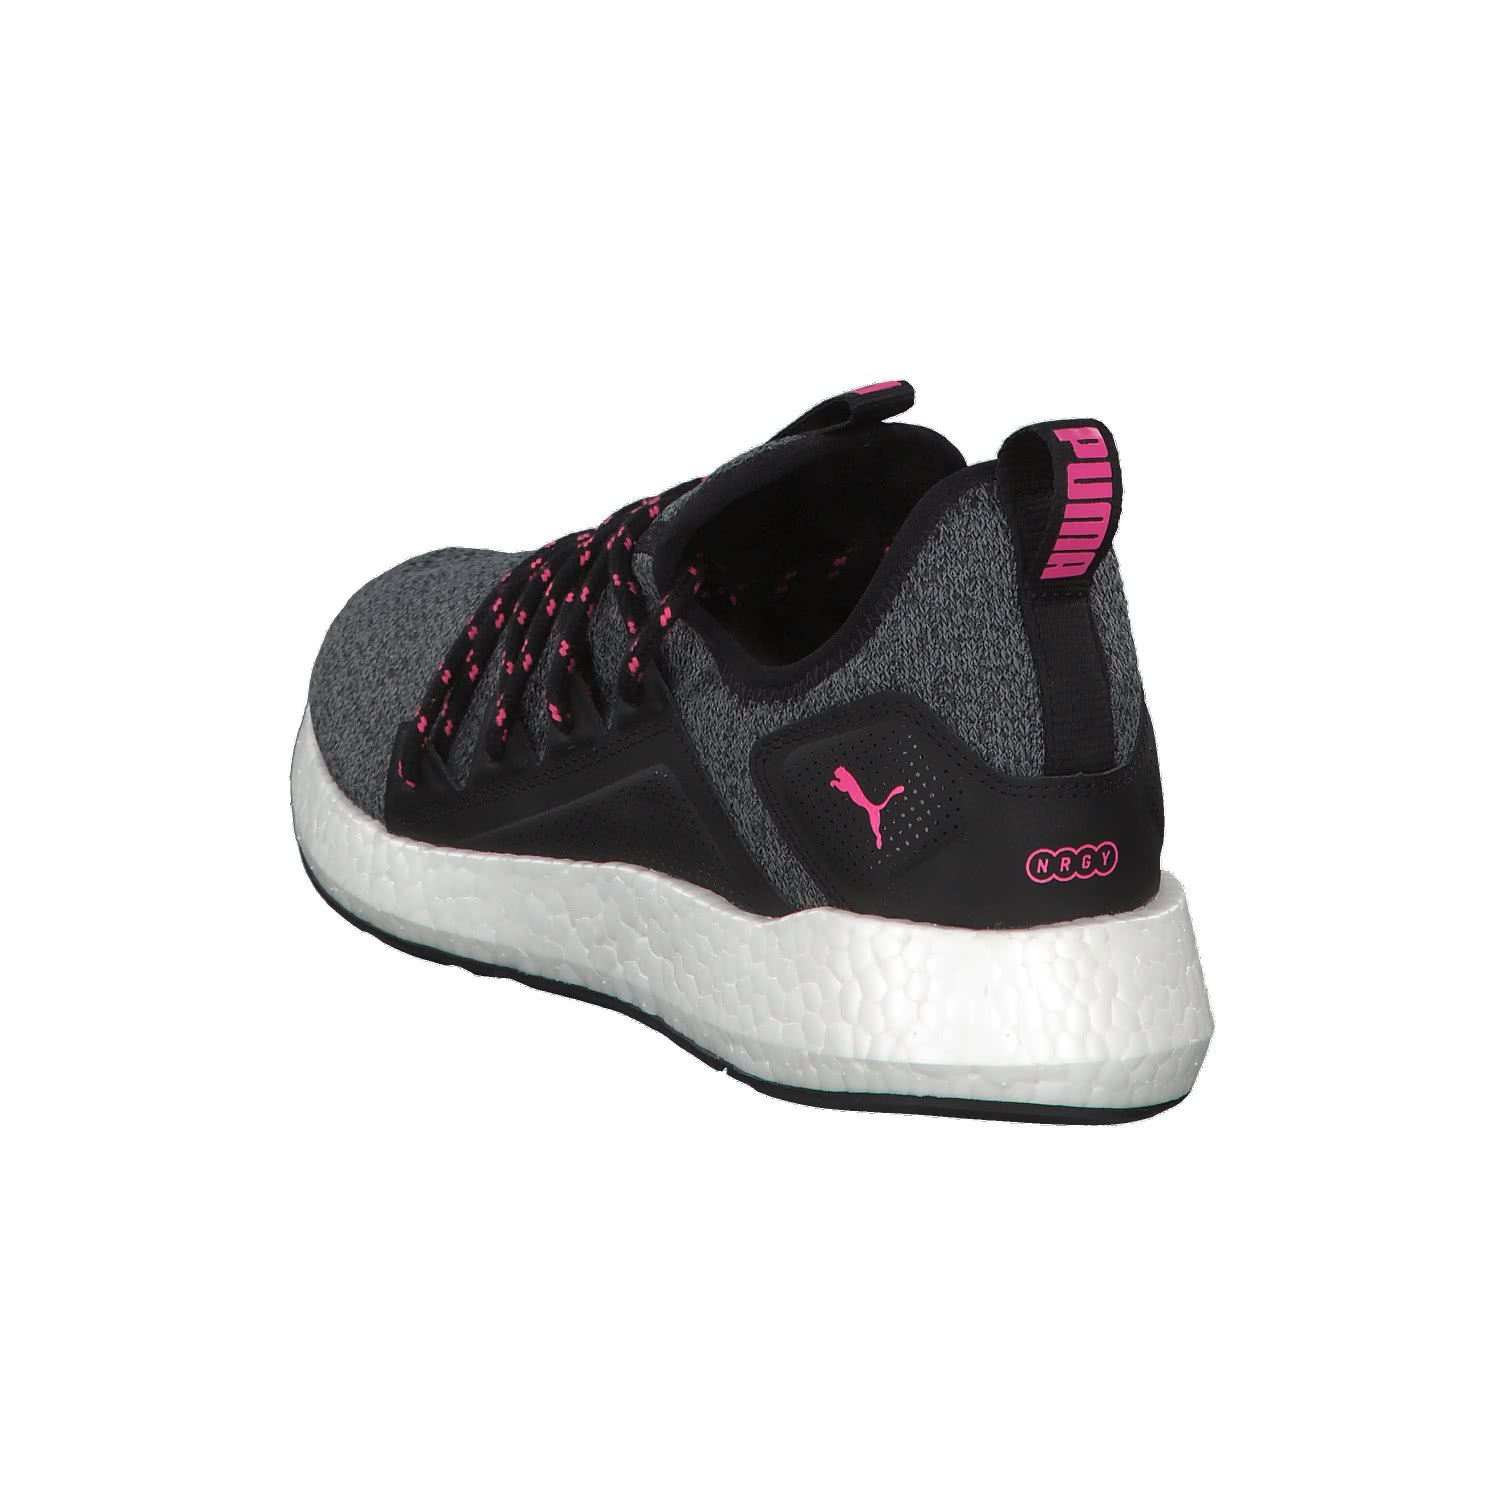 Chaussures et Sacs Chaussures Multisport Outdoor Homme